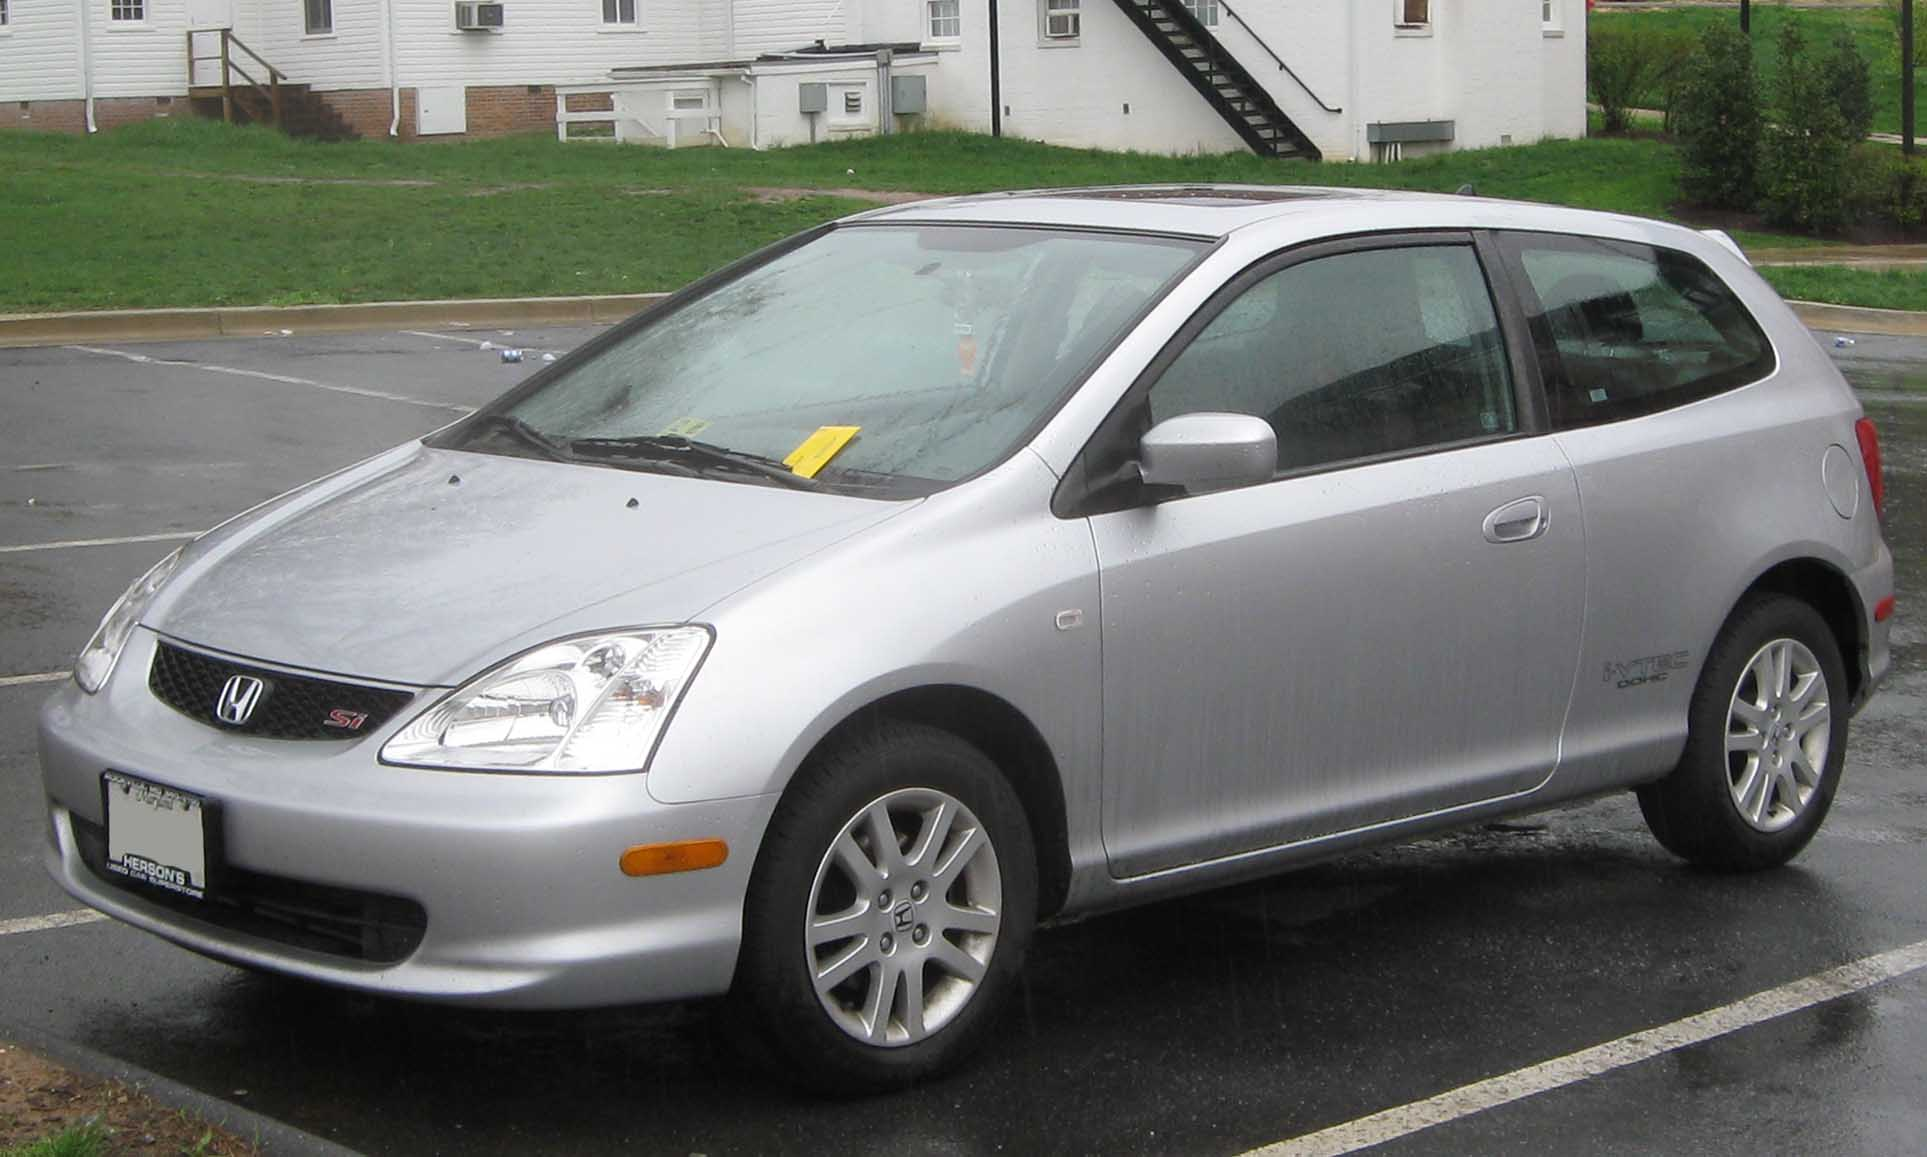 honda civic coupe vii 2002 pictures #2